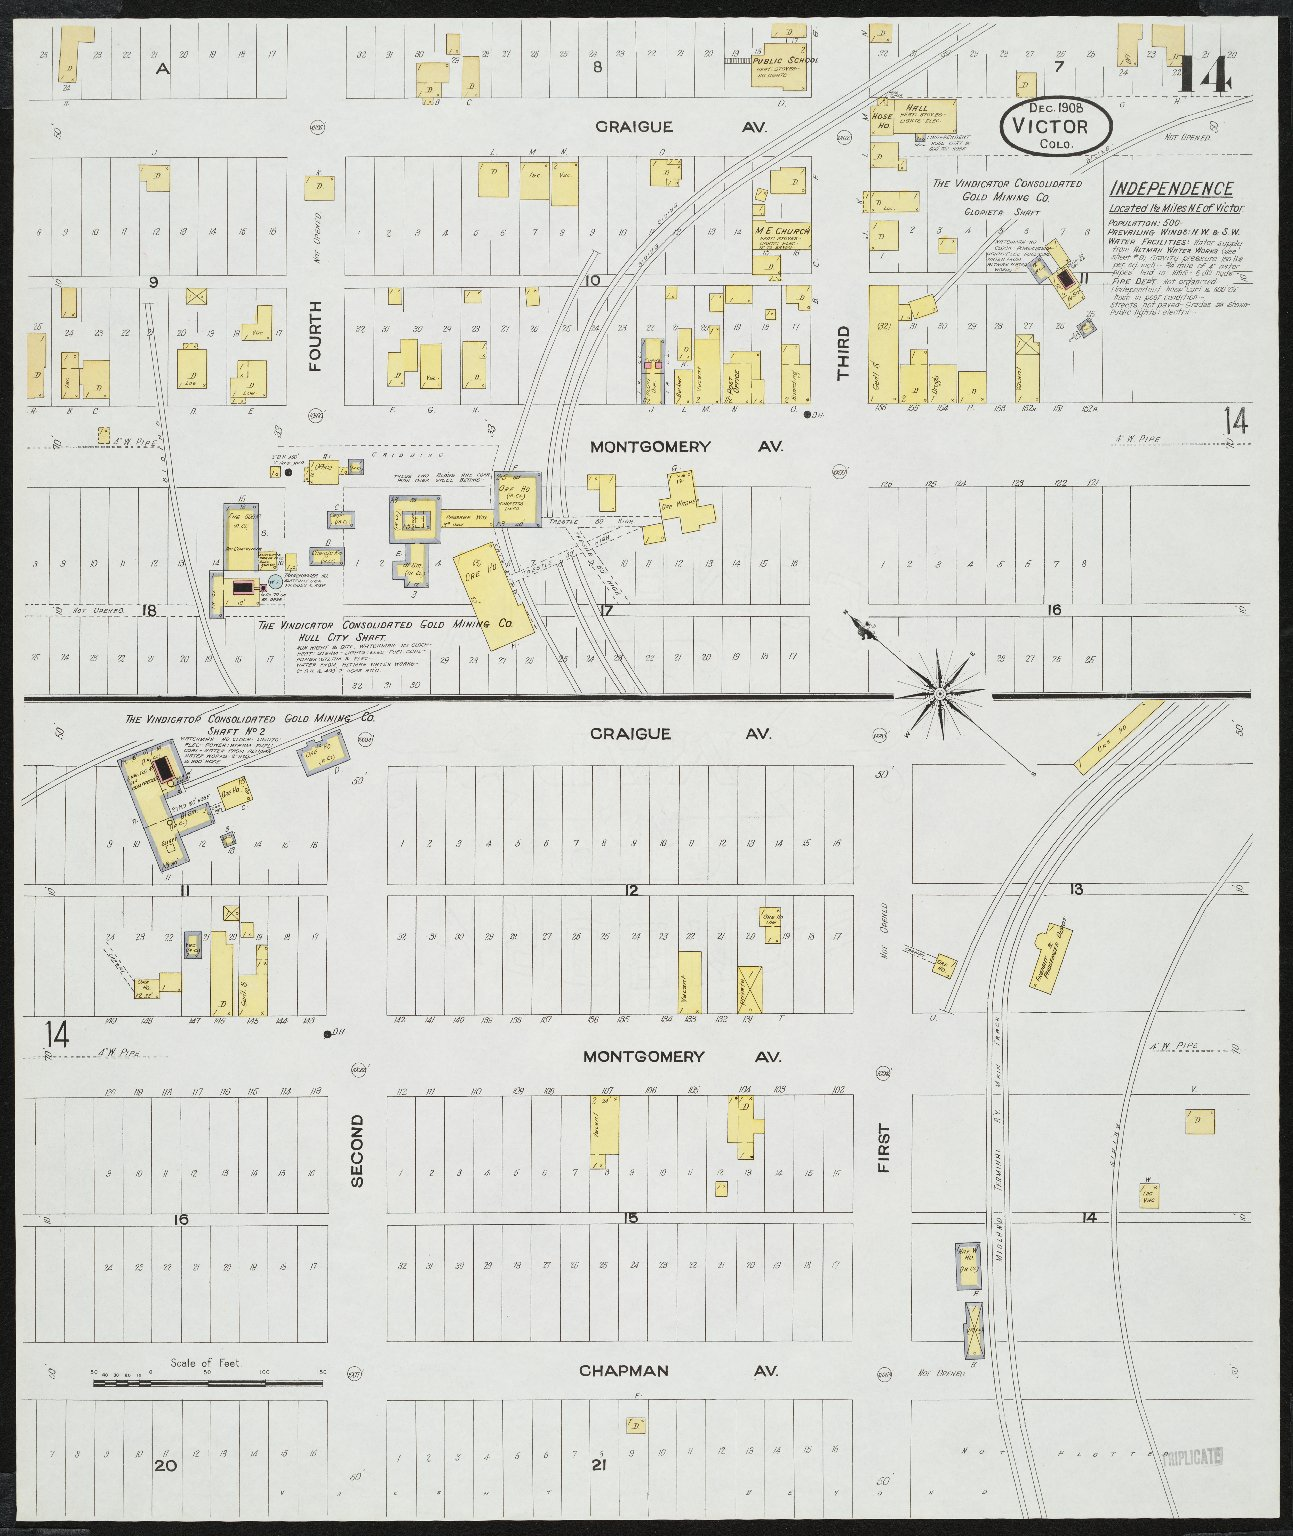 Insurance Maps of Victor, Teller County, Colorado